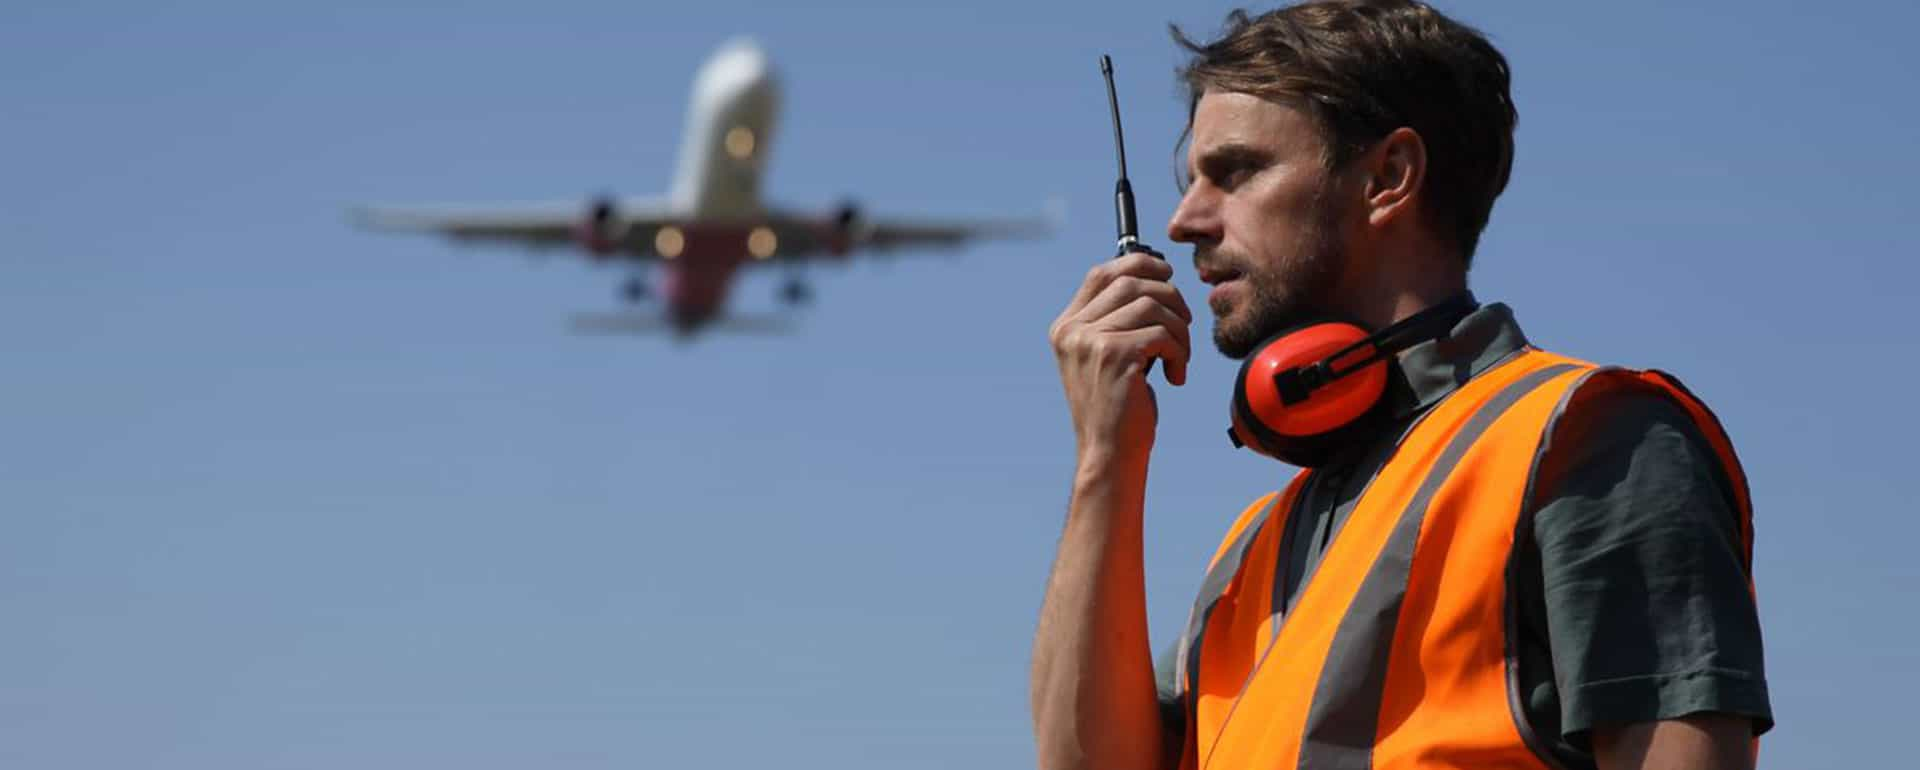 The Benefits of Outsourcing Flight Support Operations